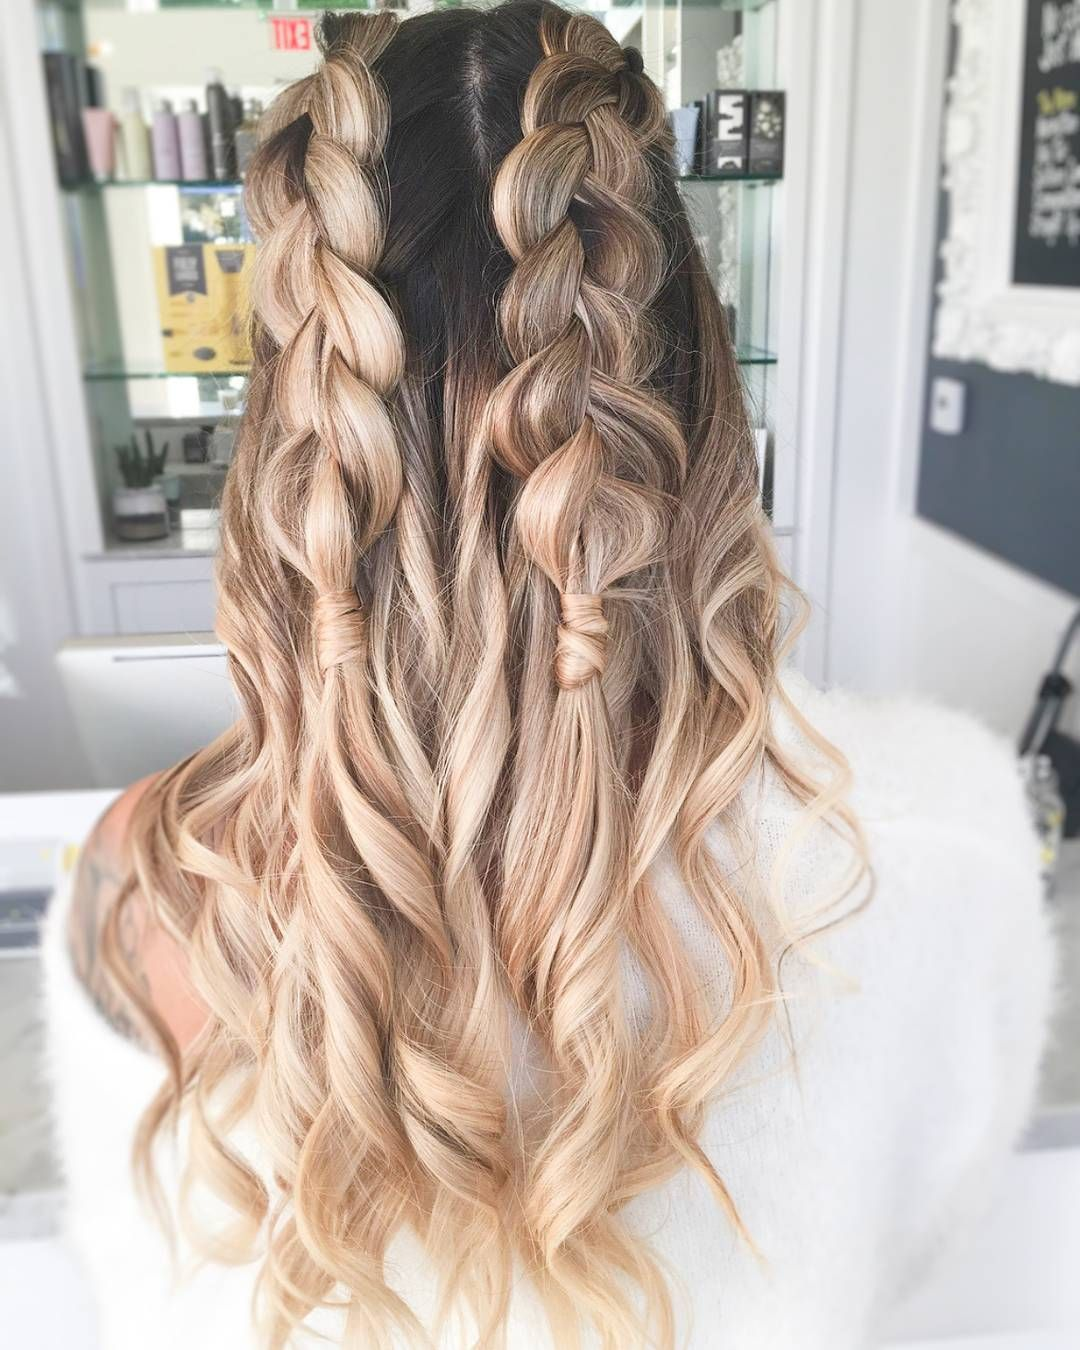 Two Braids Are Better Than One Half Up Braids With Curls Ombre Blonde Hair Braided Hairstyles Hair Beauty Braids With Curls